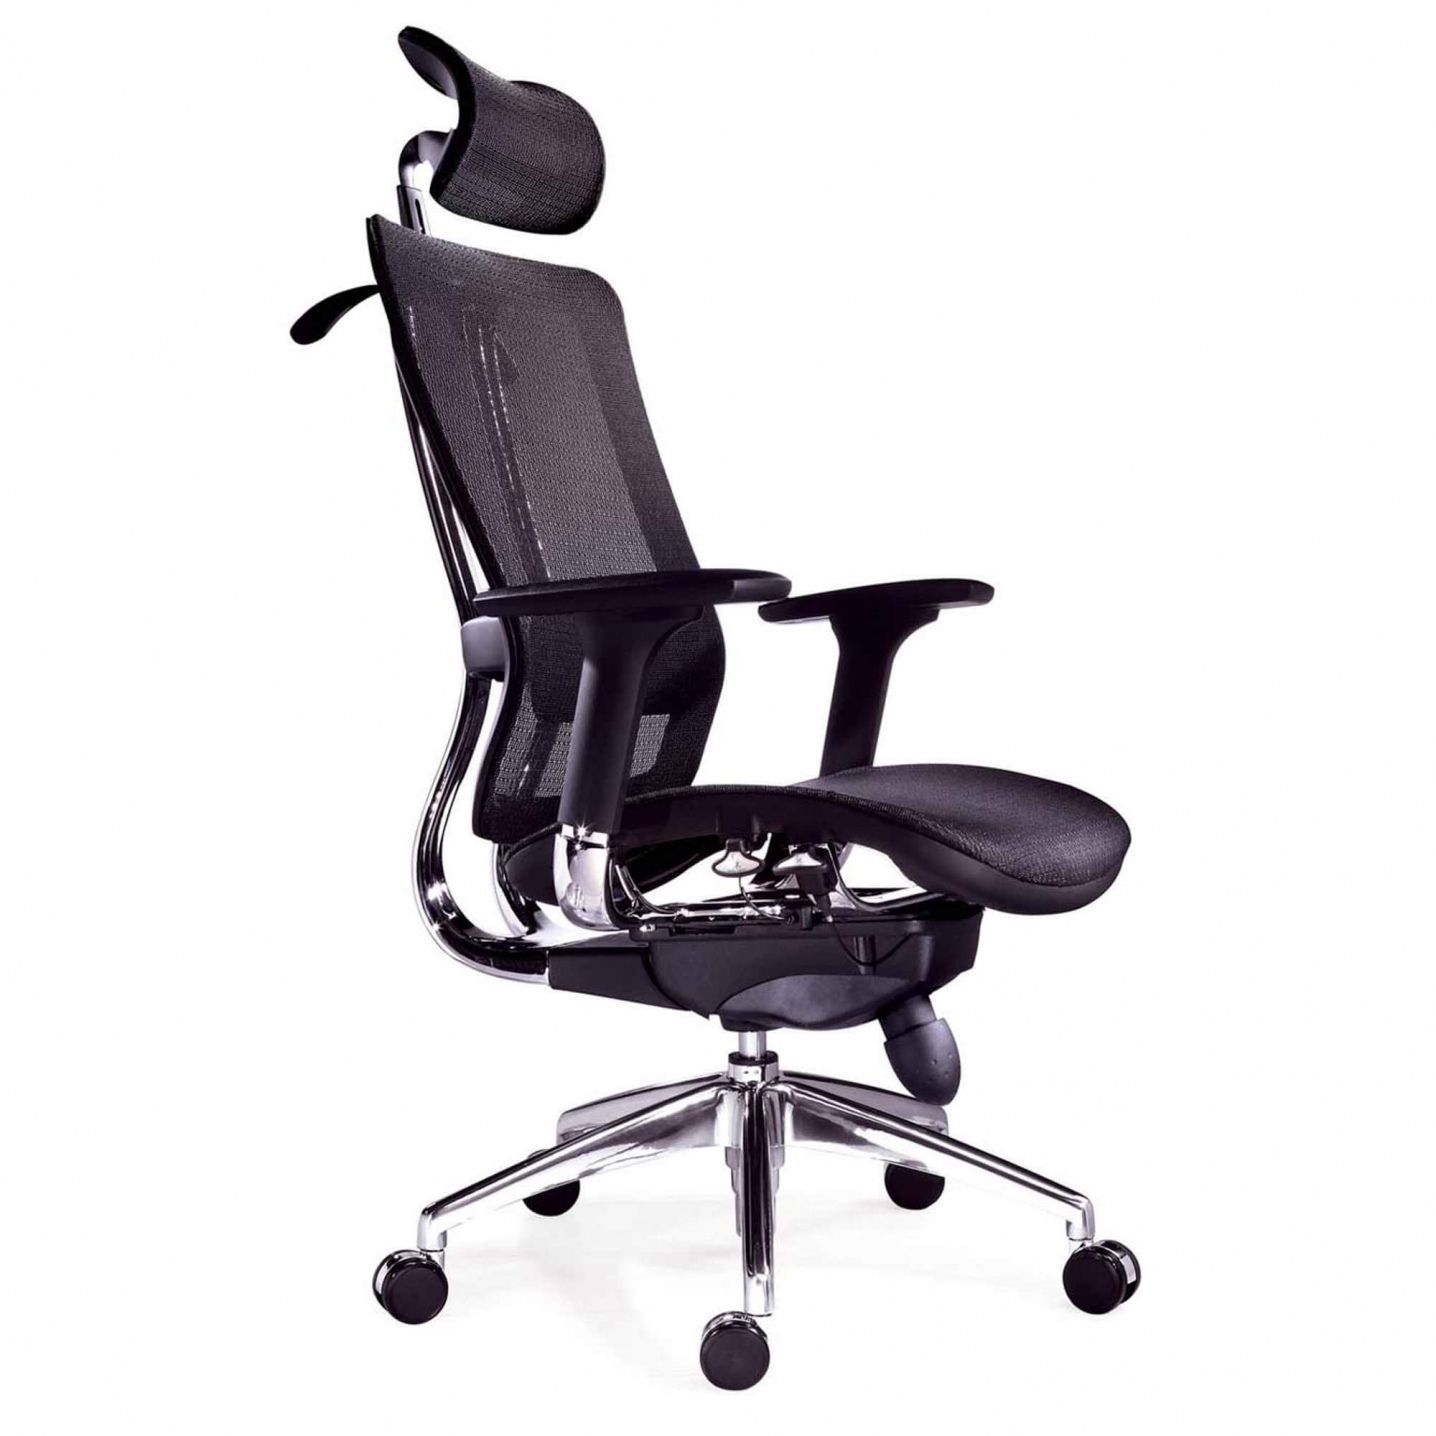 70 Ergonomic Office Chair Reviews Best Way To Paint Furniture Check More At Http